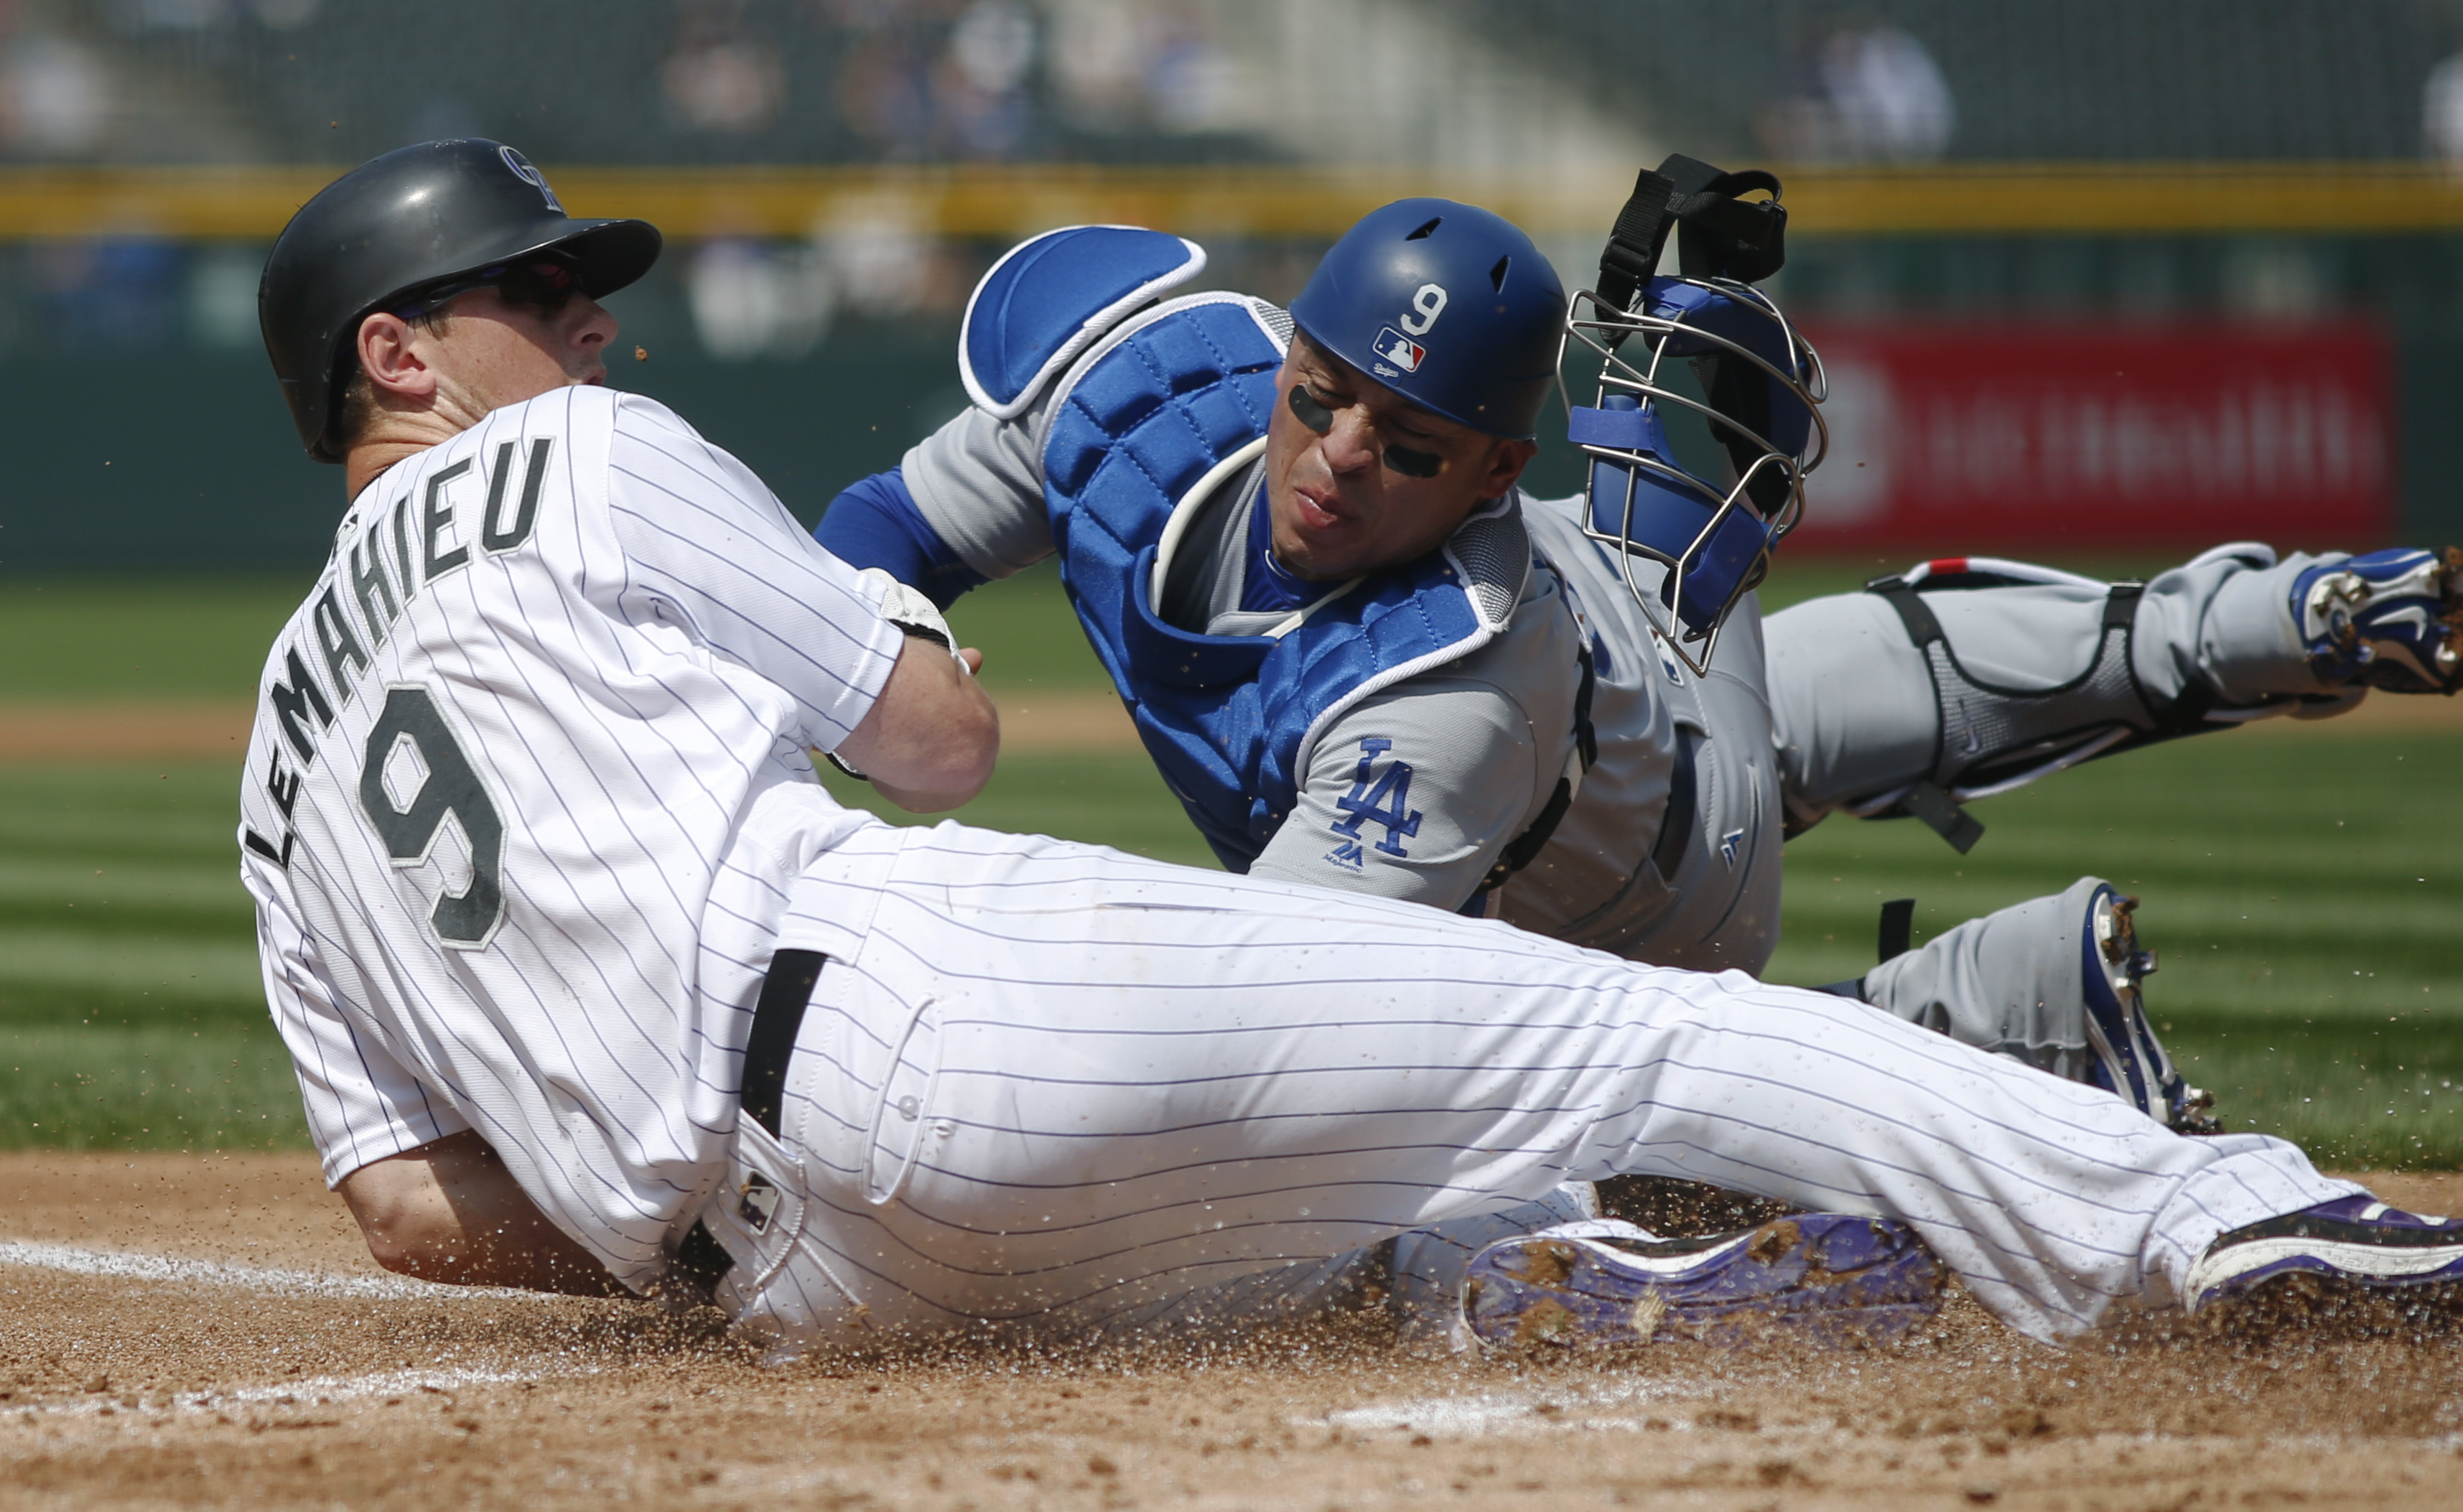 Colorado Rockies' DJ LeMahieu, front, avoids the tag by Los Angeles Dodgers catcher Carlos Ruiz to score on a double hit by Nolan Arenado in the first inning of the first baseball game of a doubleheader Wednesday, Aug. 31, 2016, in Denver. (AP Photo/David